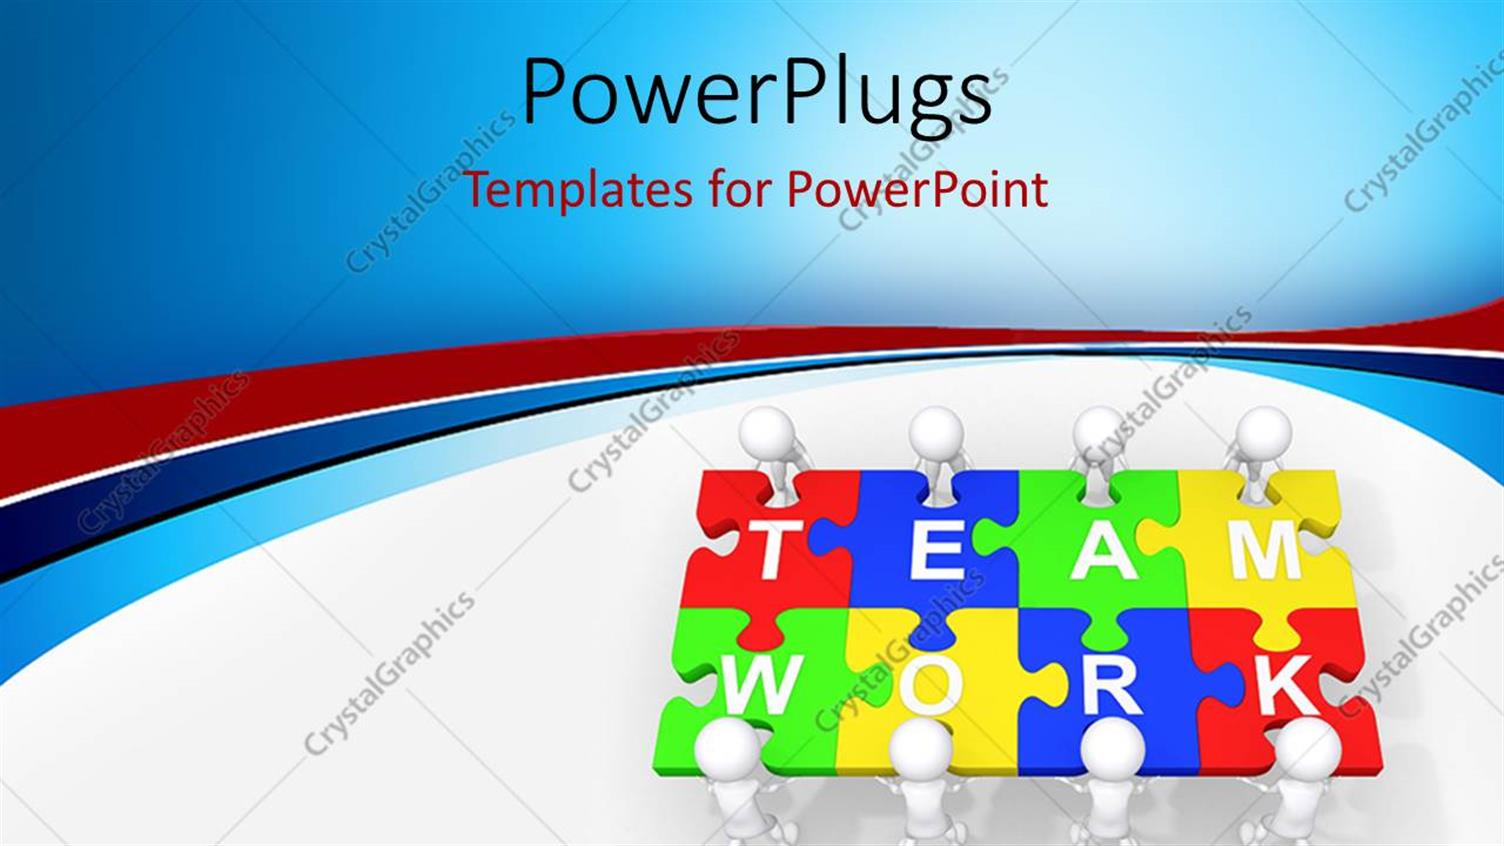 PowerPoint Template Displaying Multi Colored Puzzles with a Text that Spell Out the Words